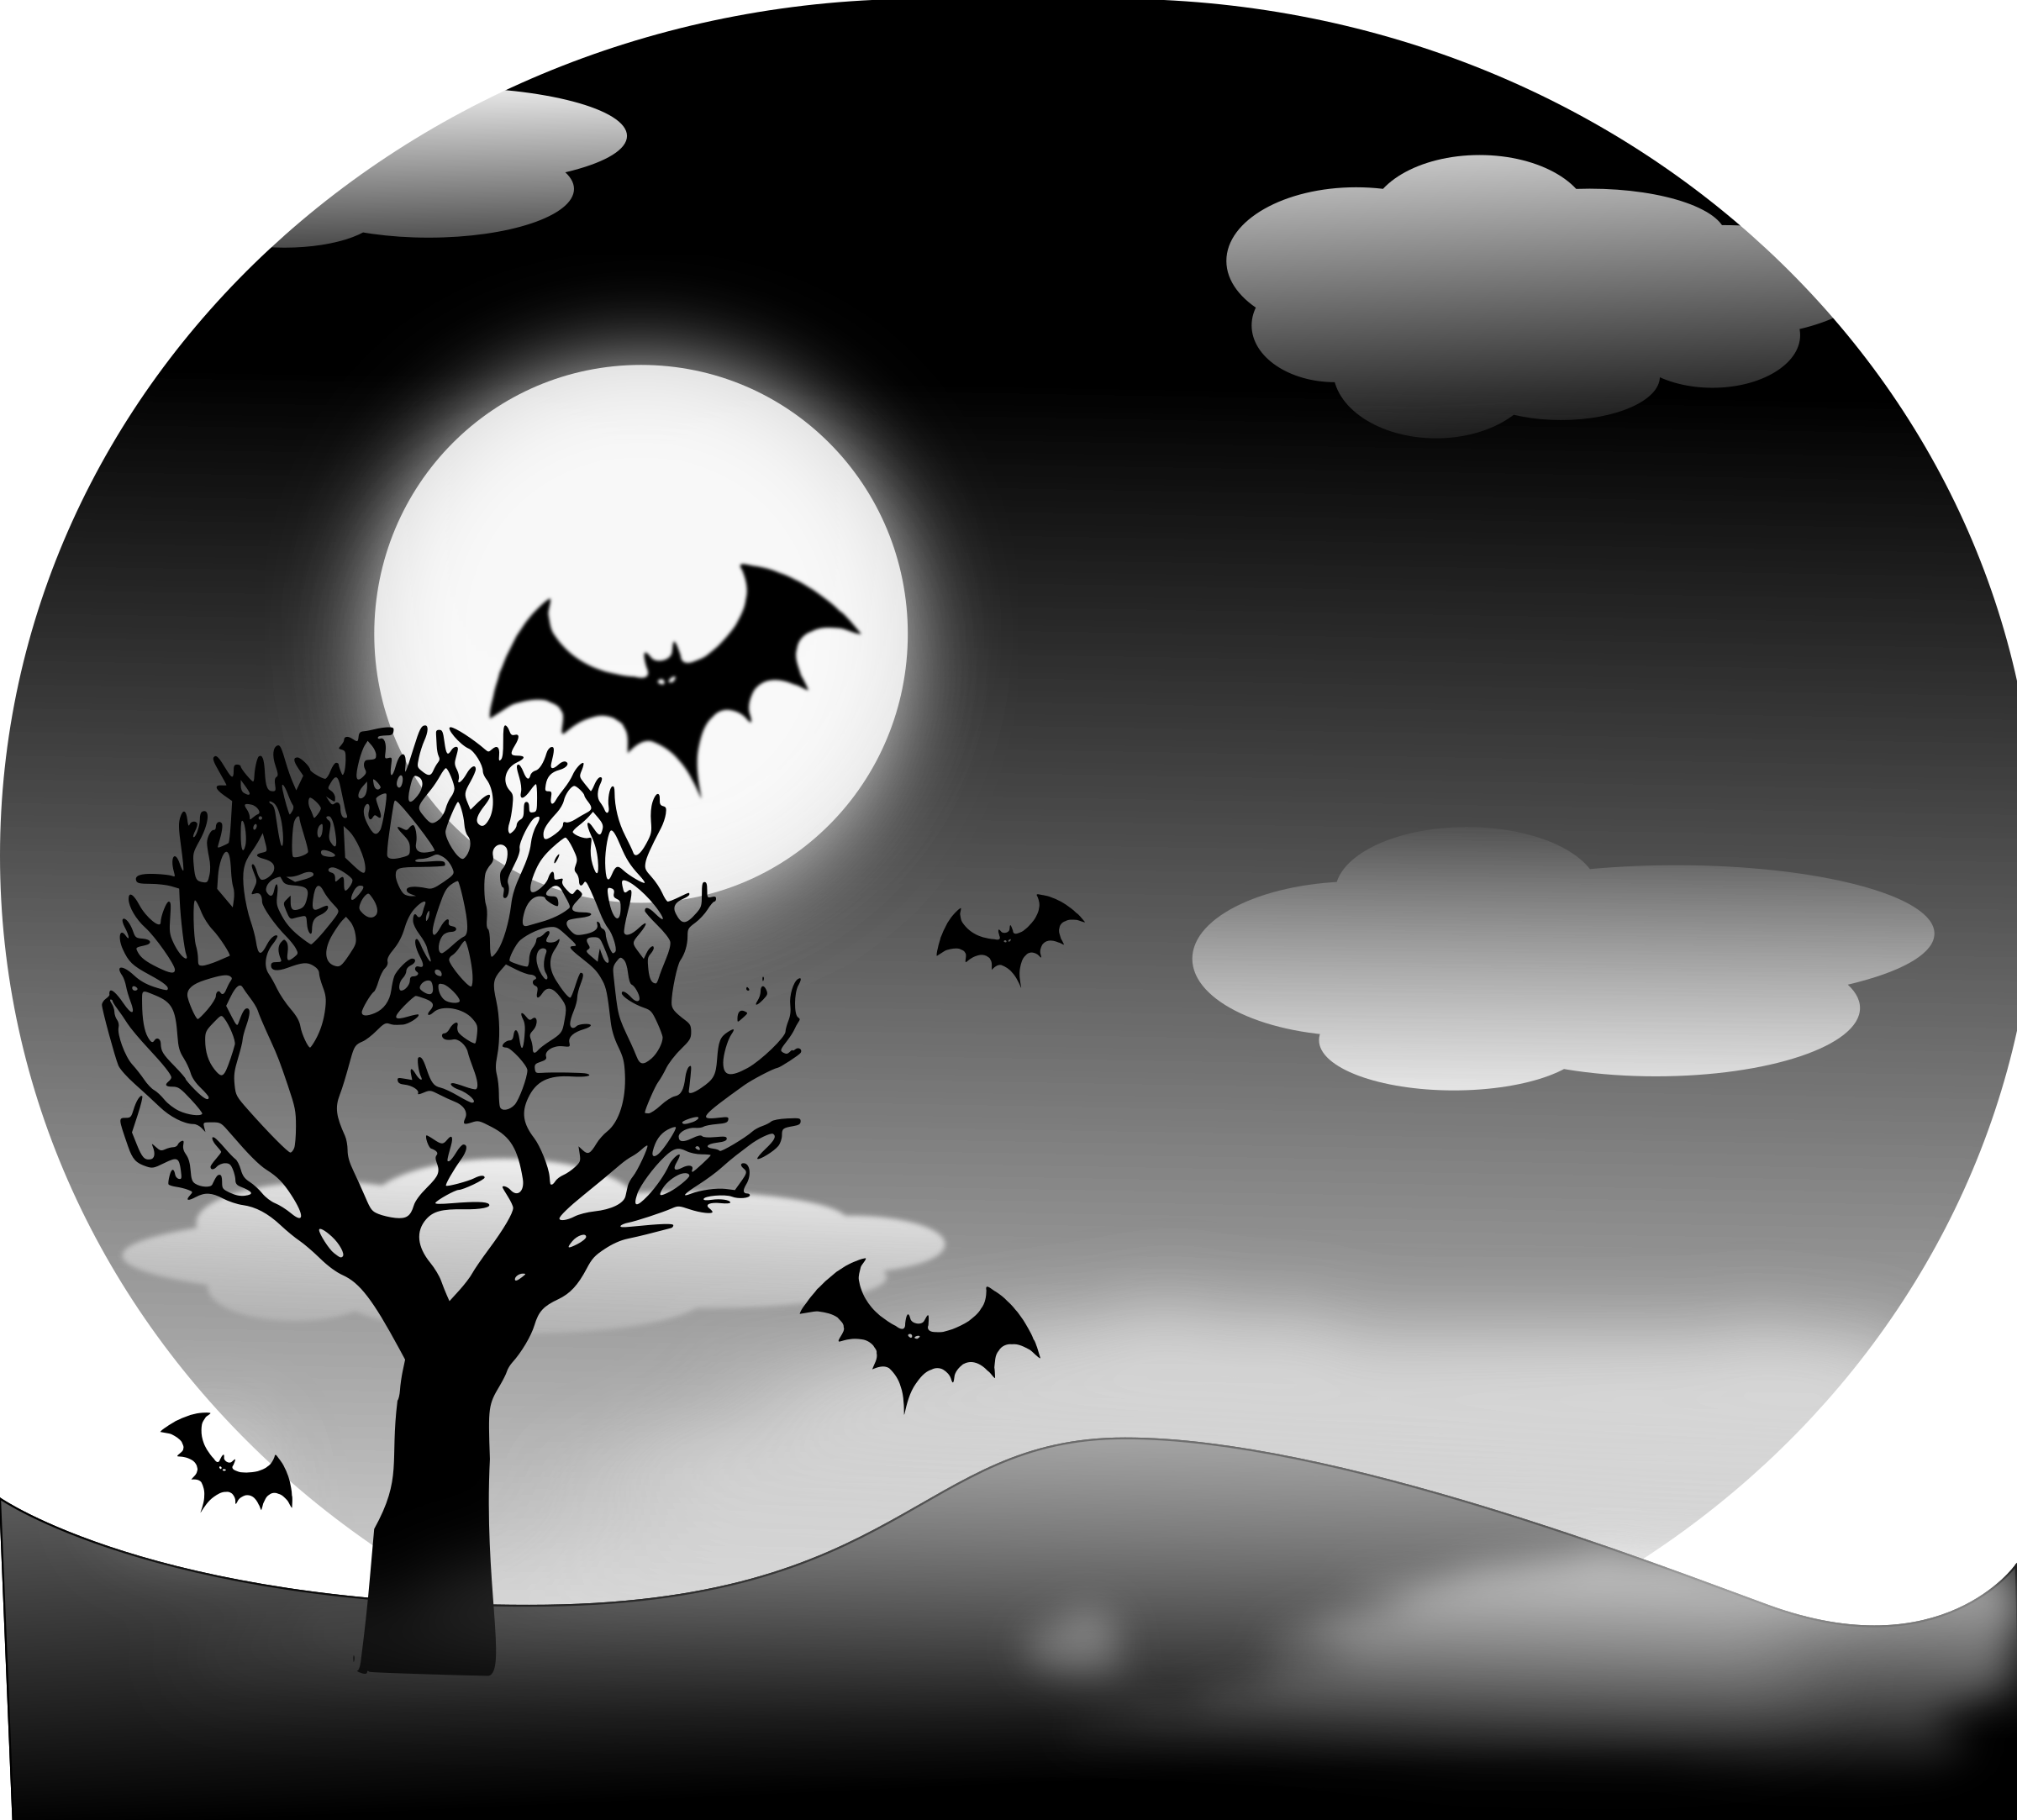 Halloween Landscape by inky2010